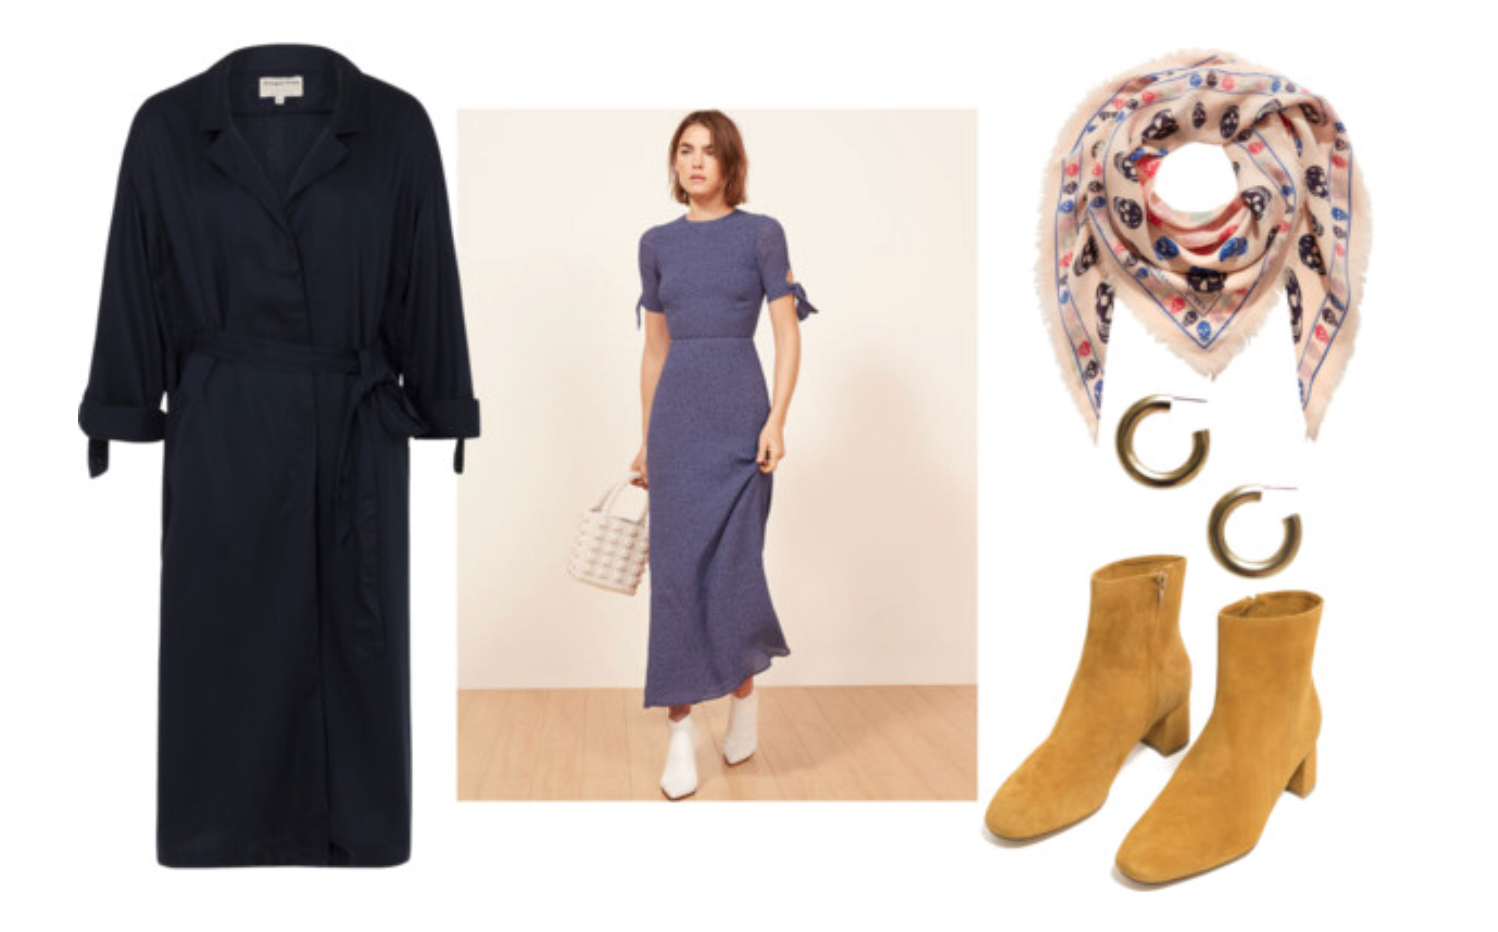 1. Navy duster   2. Long dress   3. Long scarf (similar options)   4. Hoops   5. Suede Boots